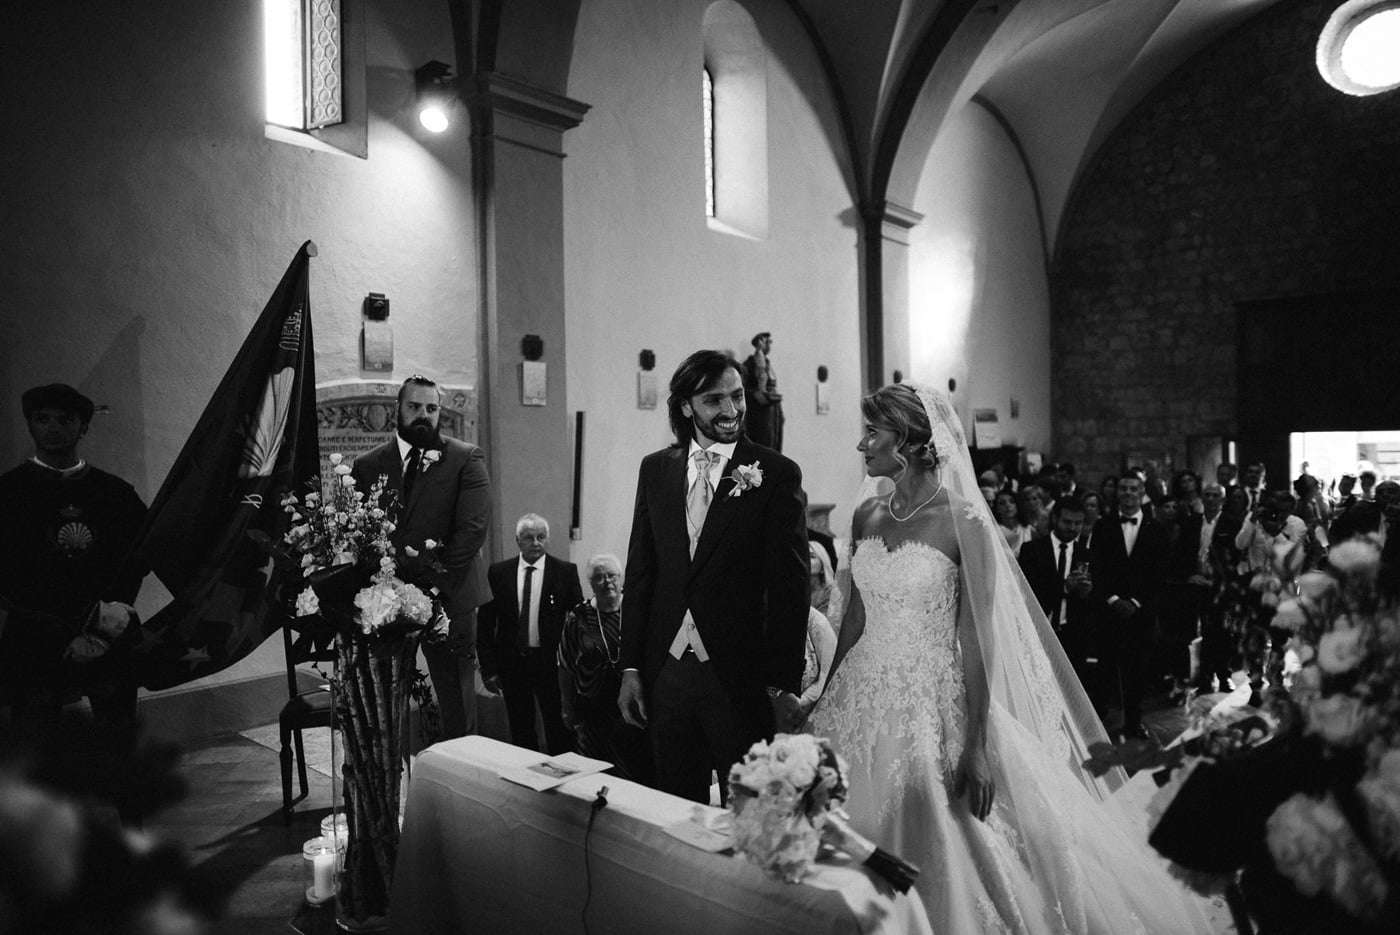 Andrea & Francesca | Wedding at Borgo San Luigi by Federico Pannacci 30